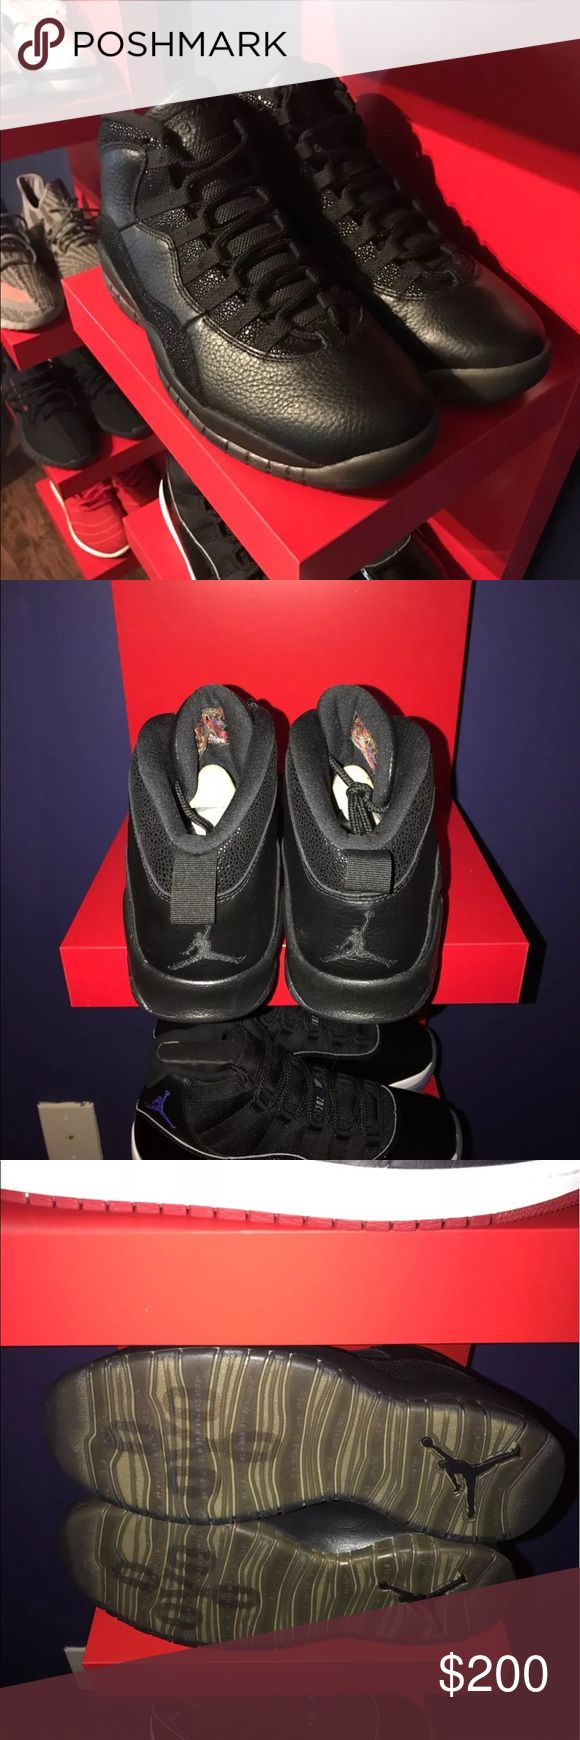 "Air Jordan retro 10 "" ovo black "" I don't sell through Poshmark. I ship& accept payment through PayPal. I DONT SELL FAKES OR REPLICAS. I DONT DO TRADES. If serious interested contact me Shoes Sneakers"